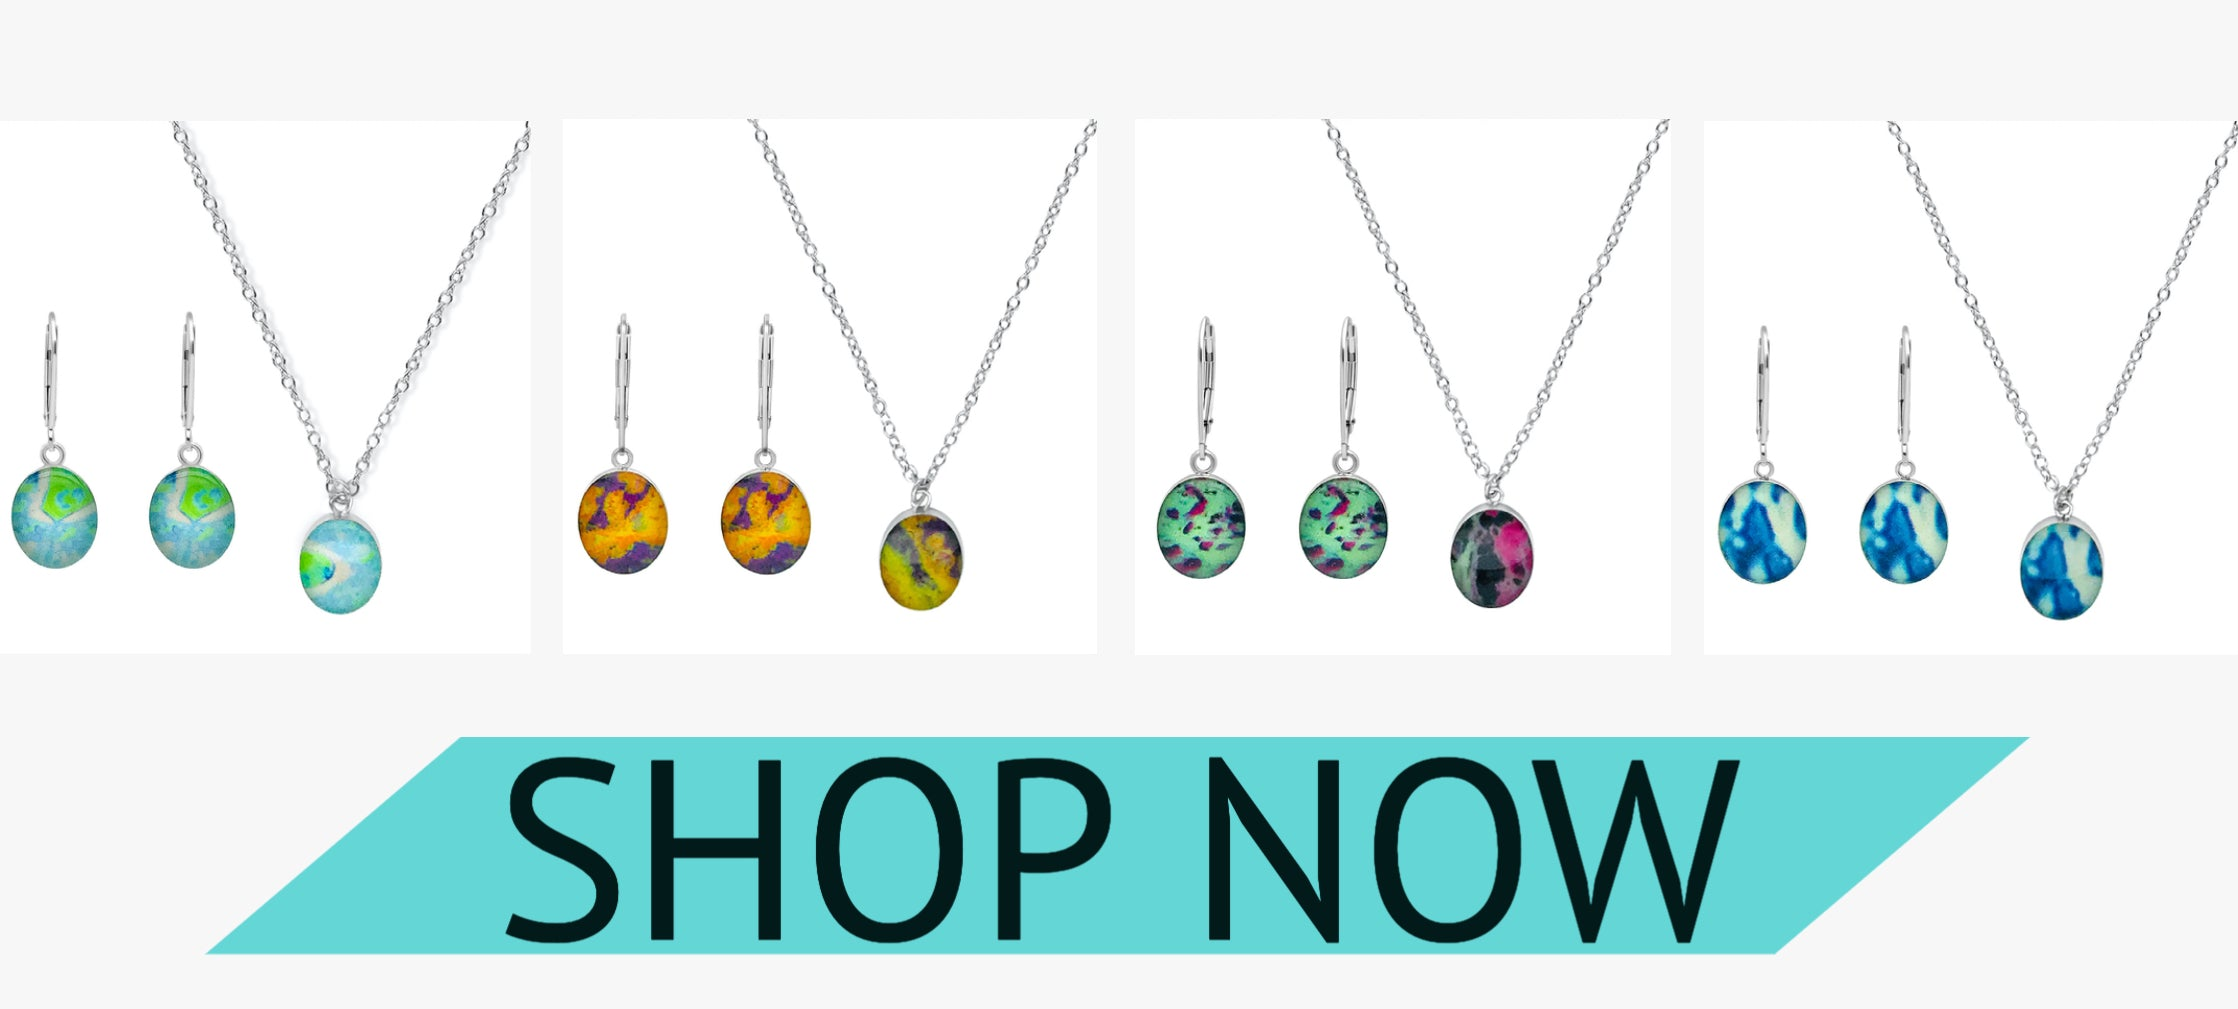 awareness jewelry sets embrace necklace and earrings that give back